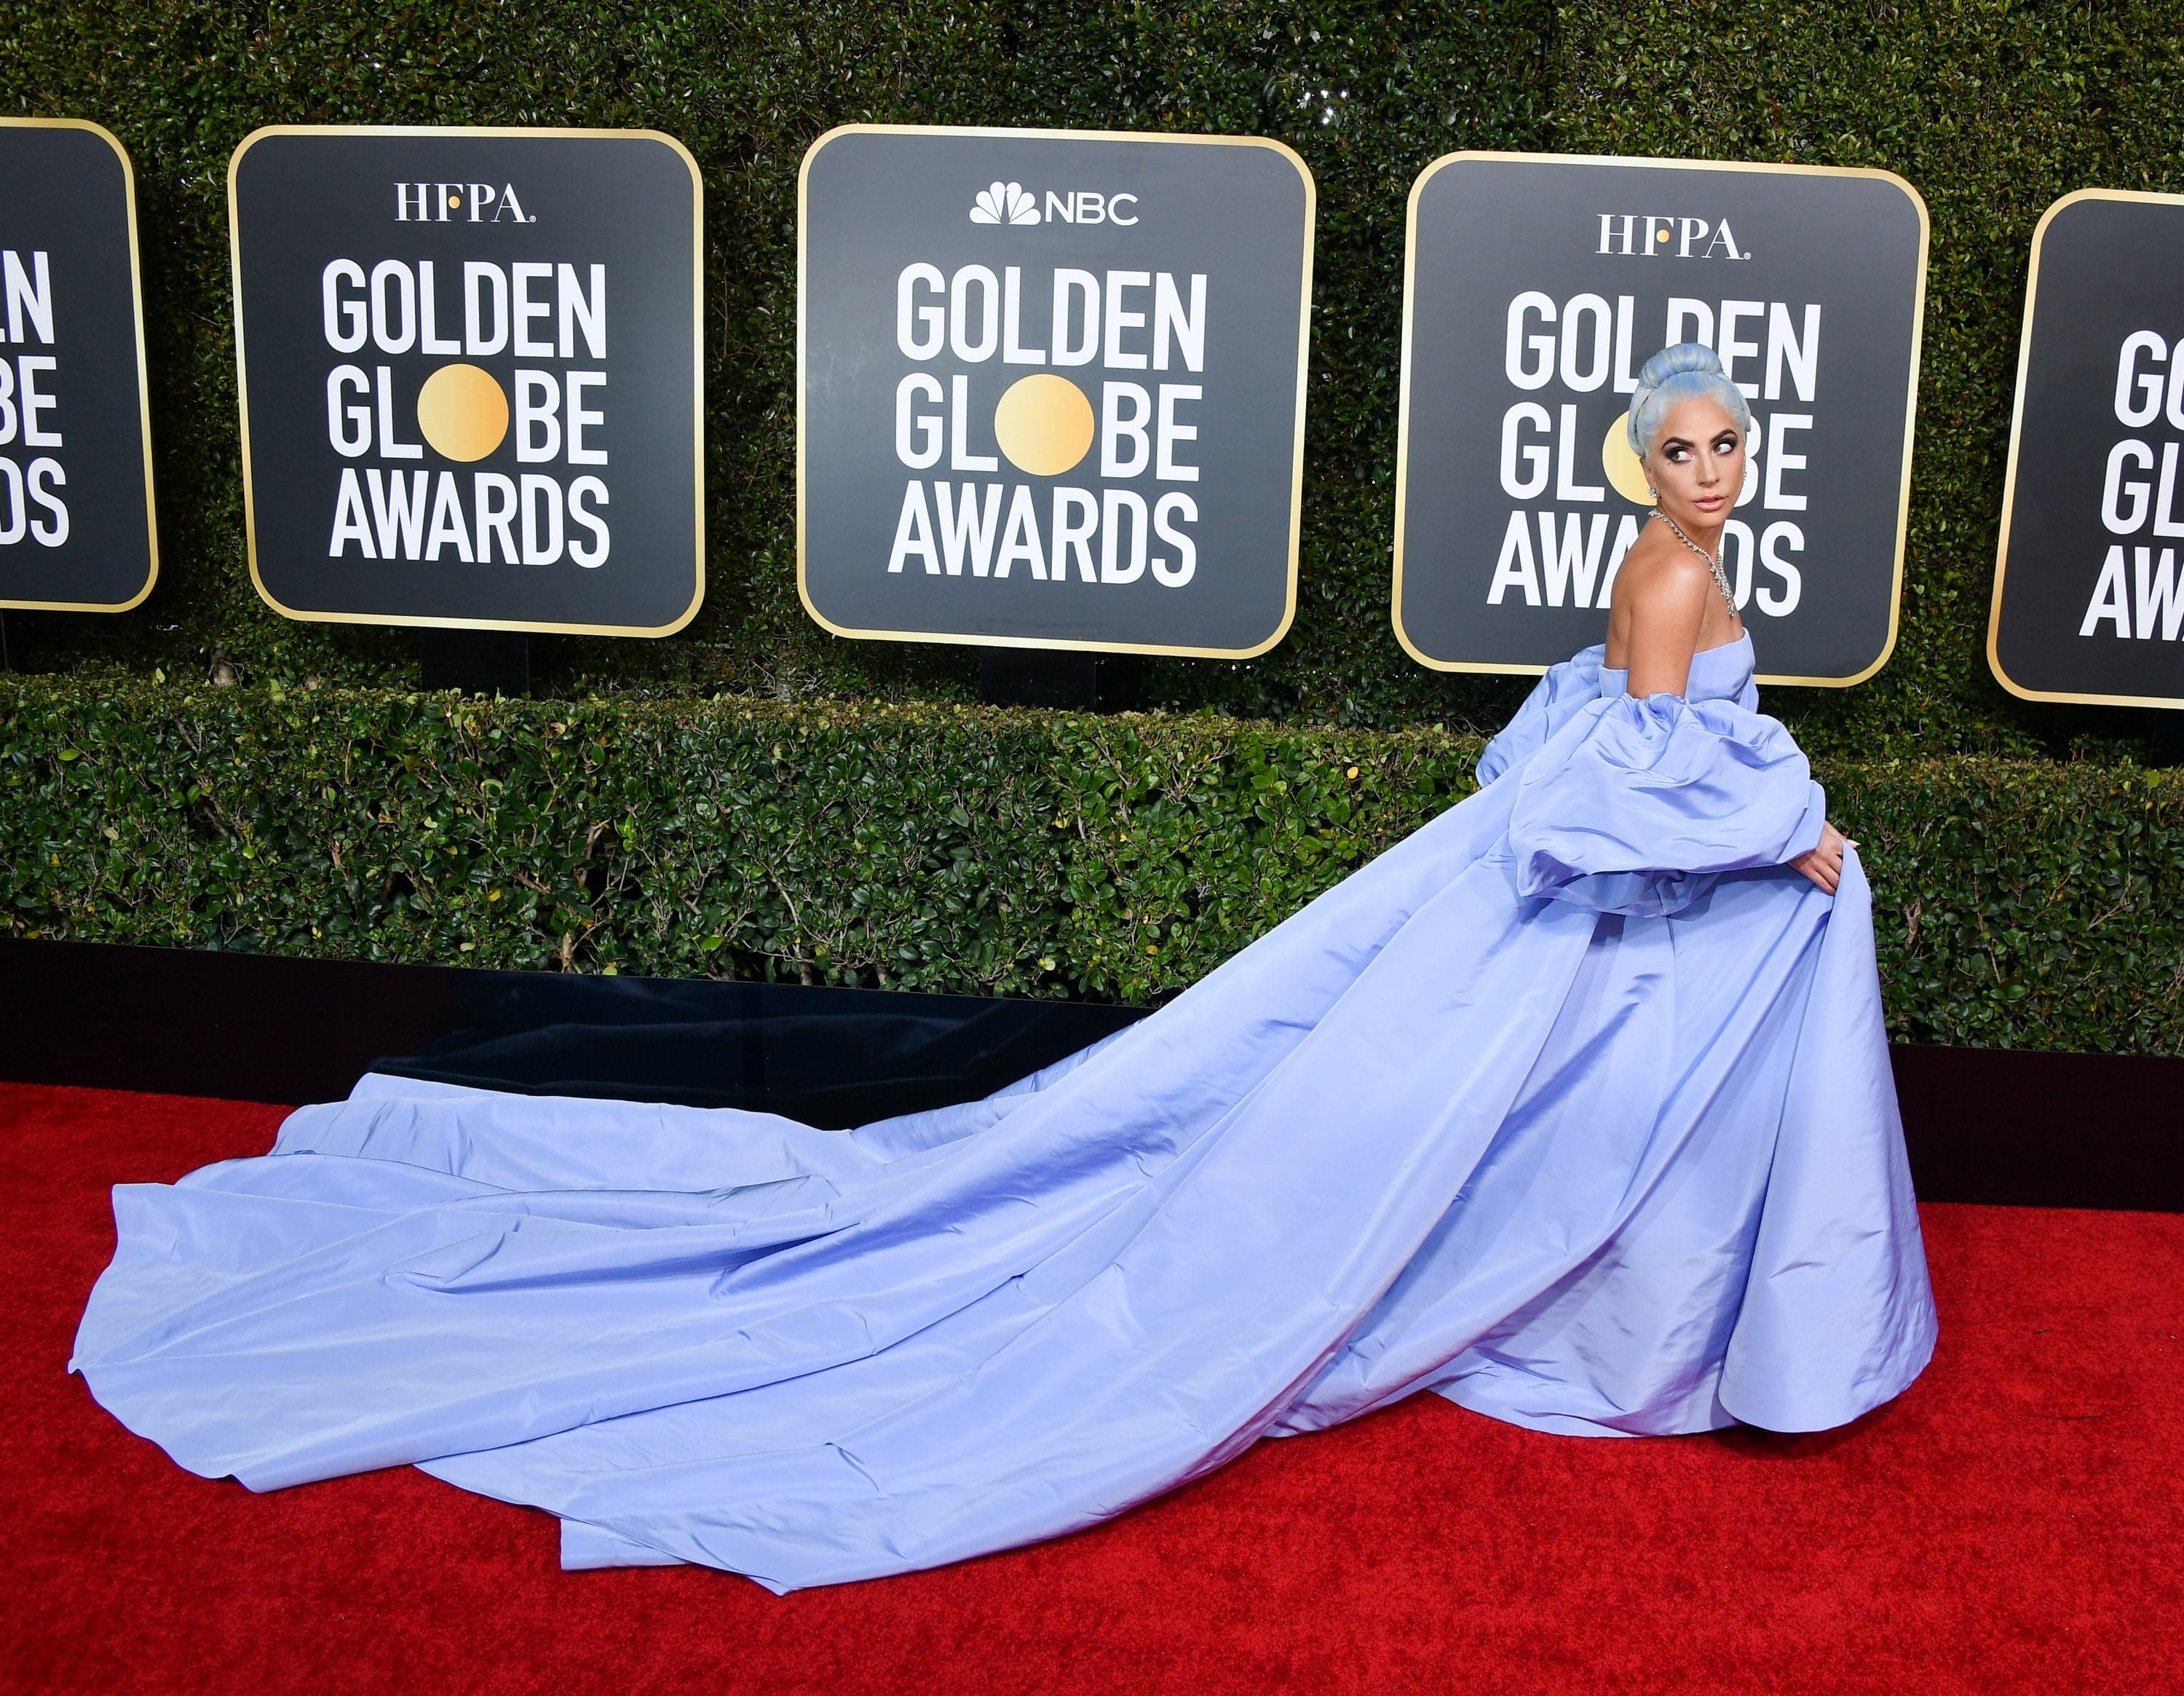 BEVERLY HILLS, CALIFORNIA - JANUARY 06: Lady Gaga attends the 76th Annual Golden Globe Awards held at The Beverly Hilton Hotel on January 06, 2019 in Beverly Hills, California. (Photo by George Pimentel/WireImage)